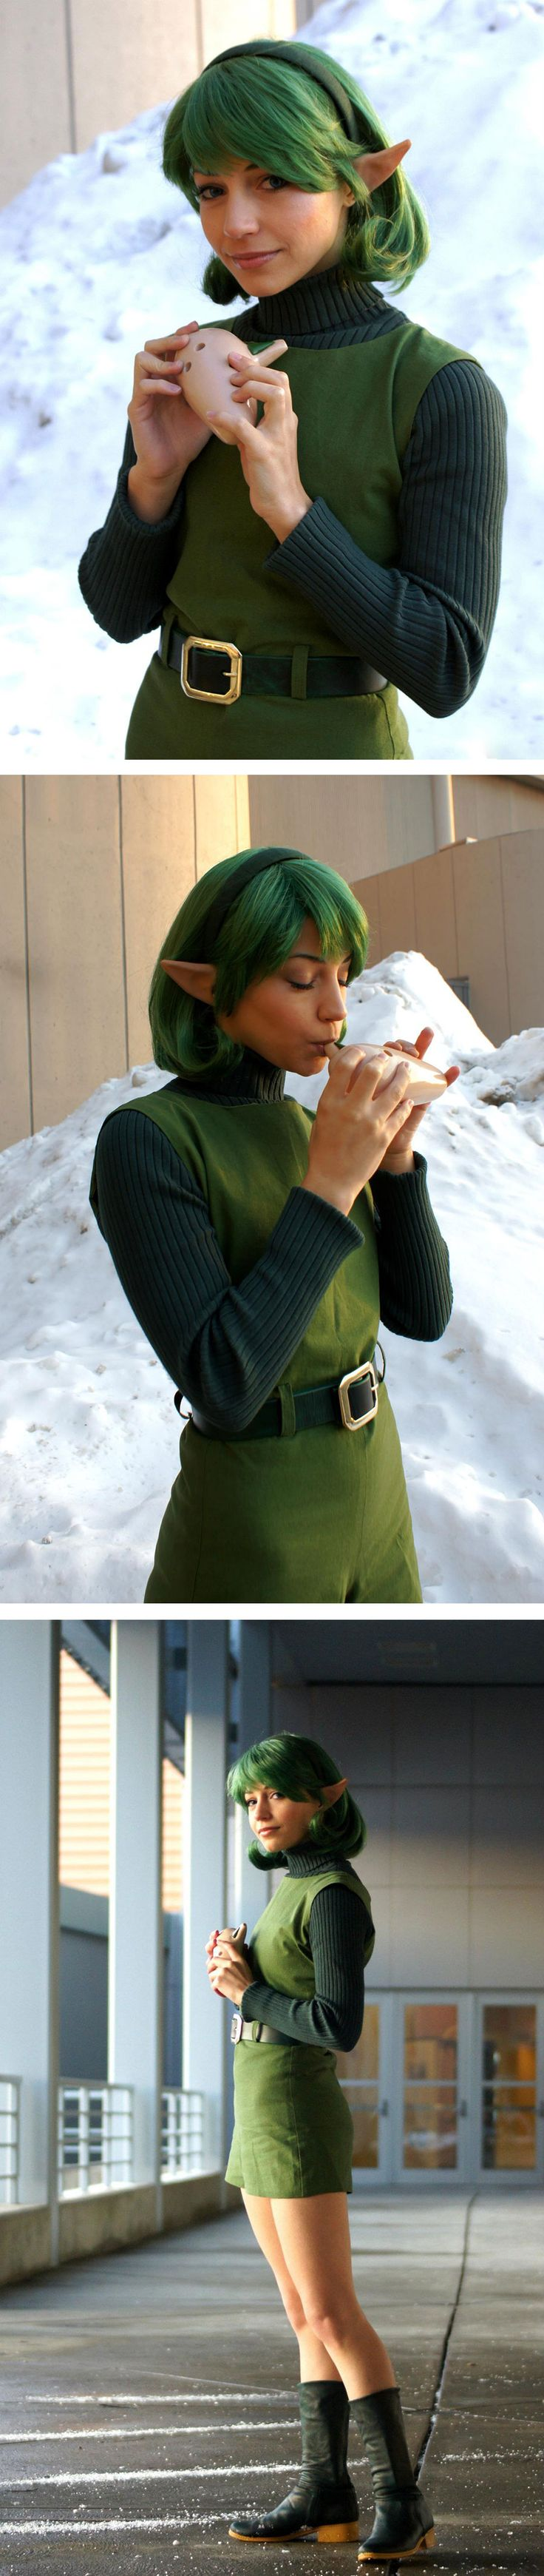 Saria from Zelda by Michelle Morse